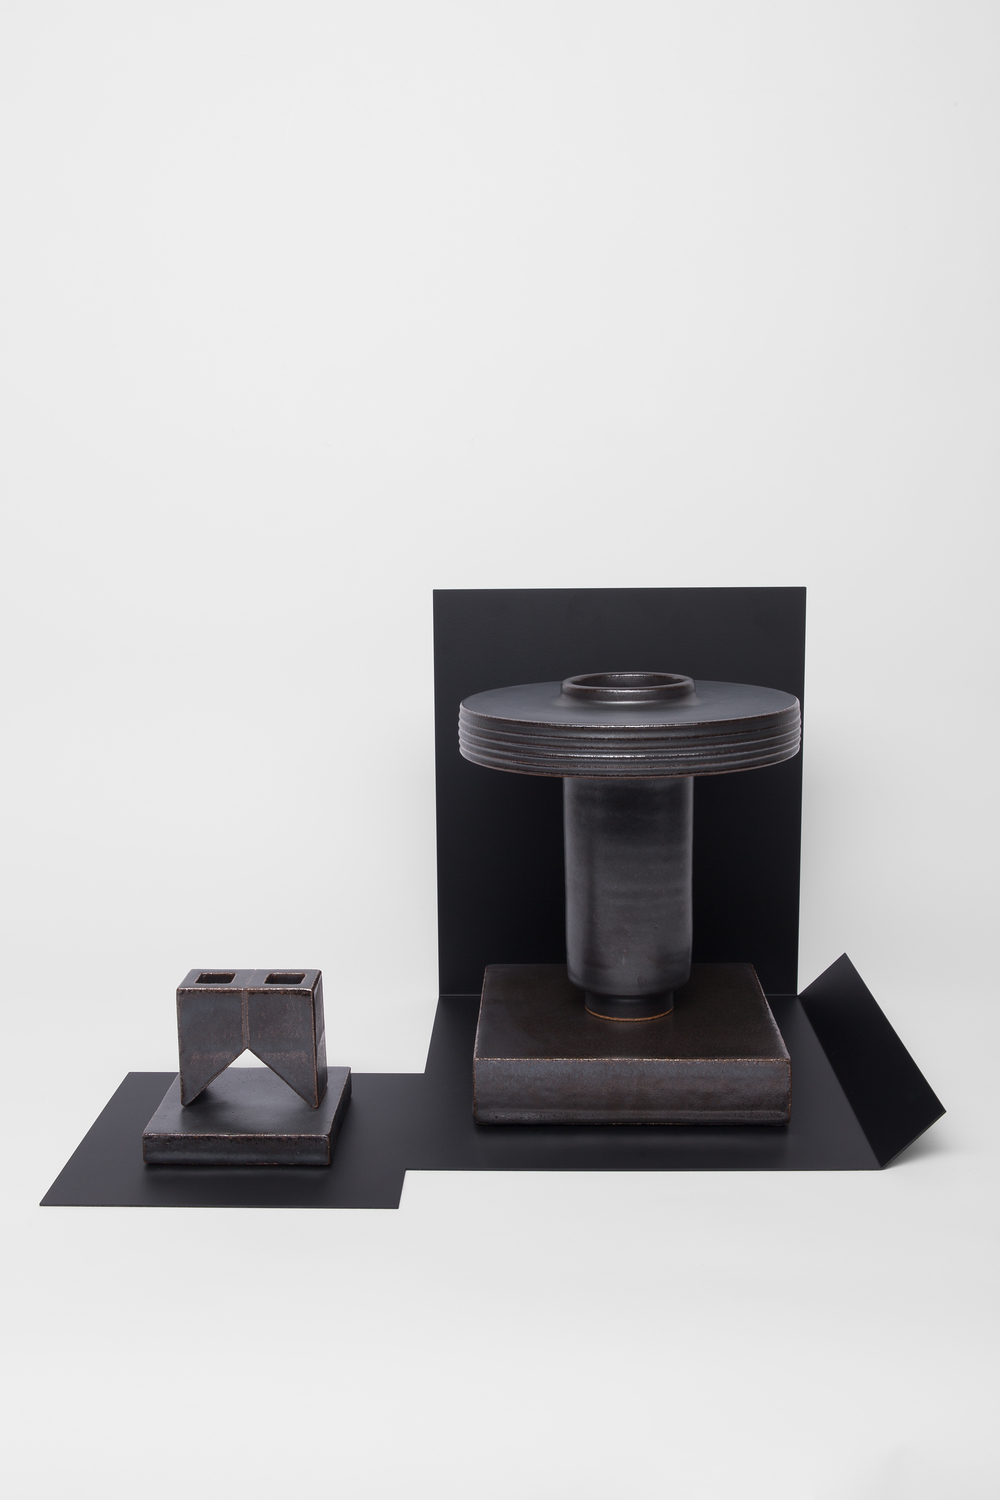 Studio Objects in Black (w/black tray)